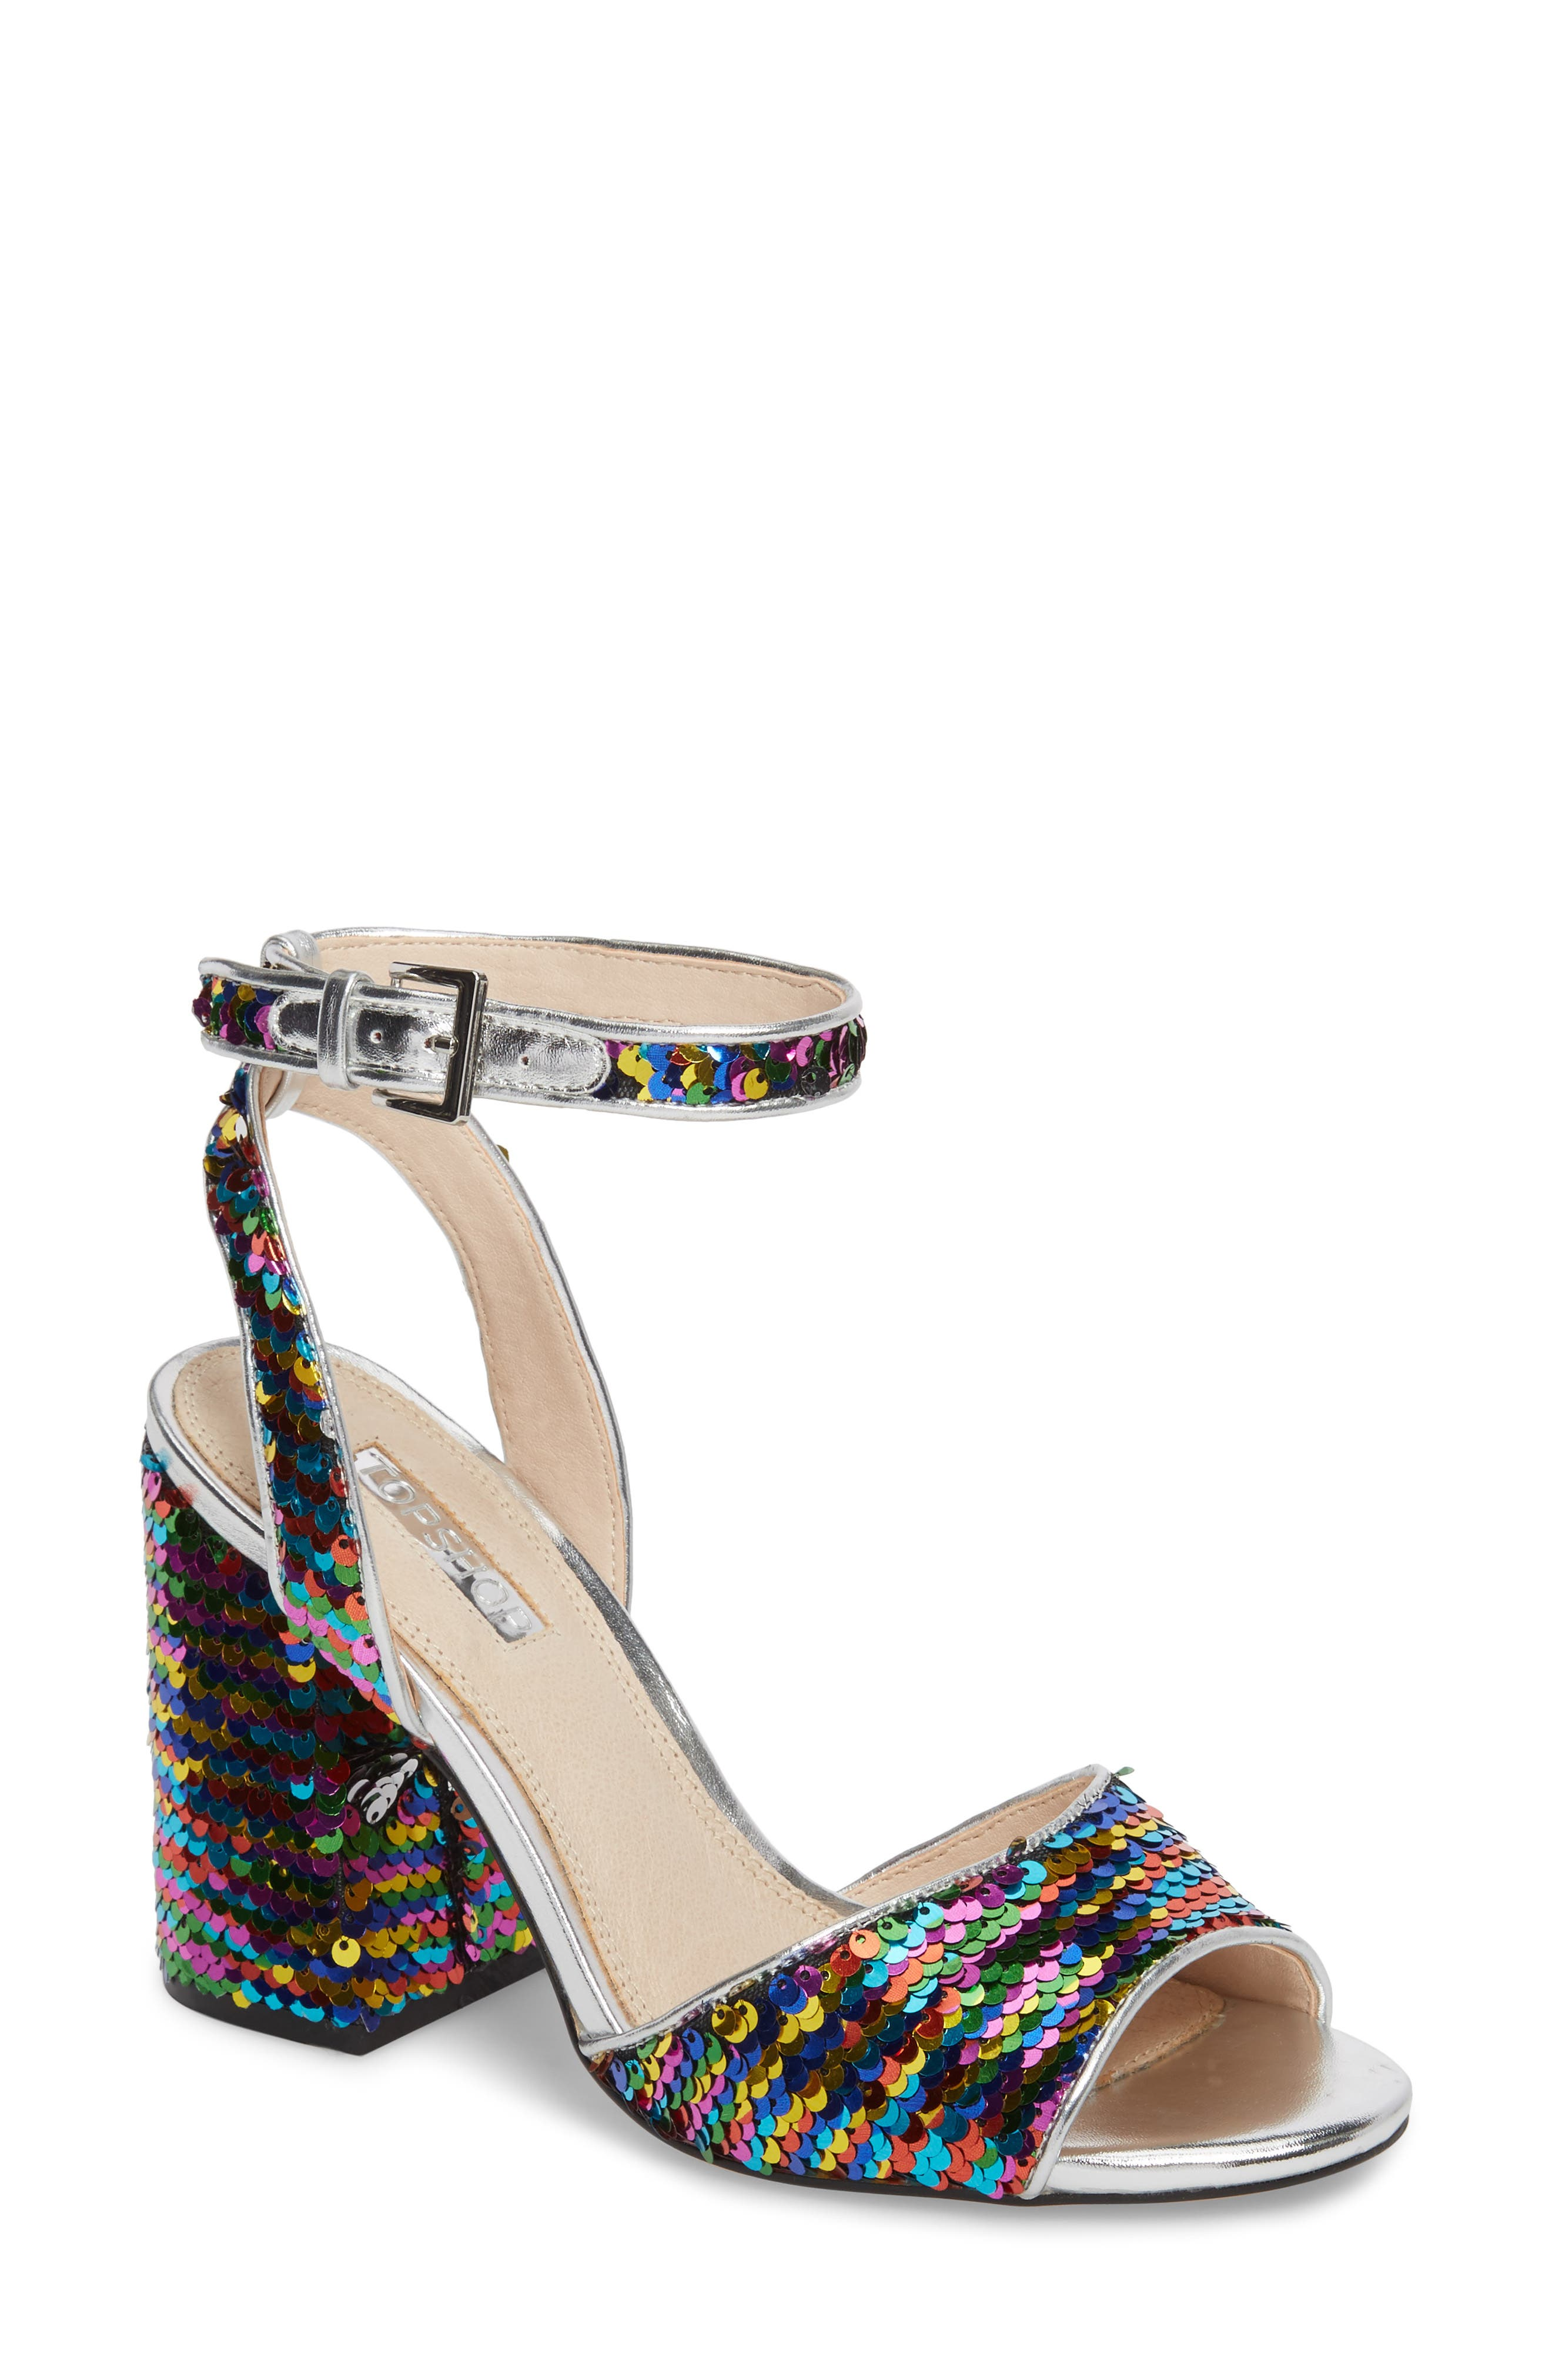 Reaction Sequin Block Heel Sandal,                         Main,                         color, Silver Multi